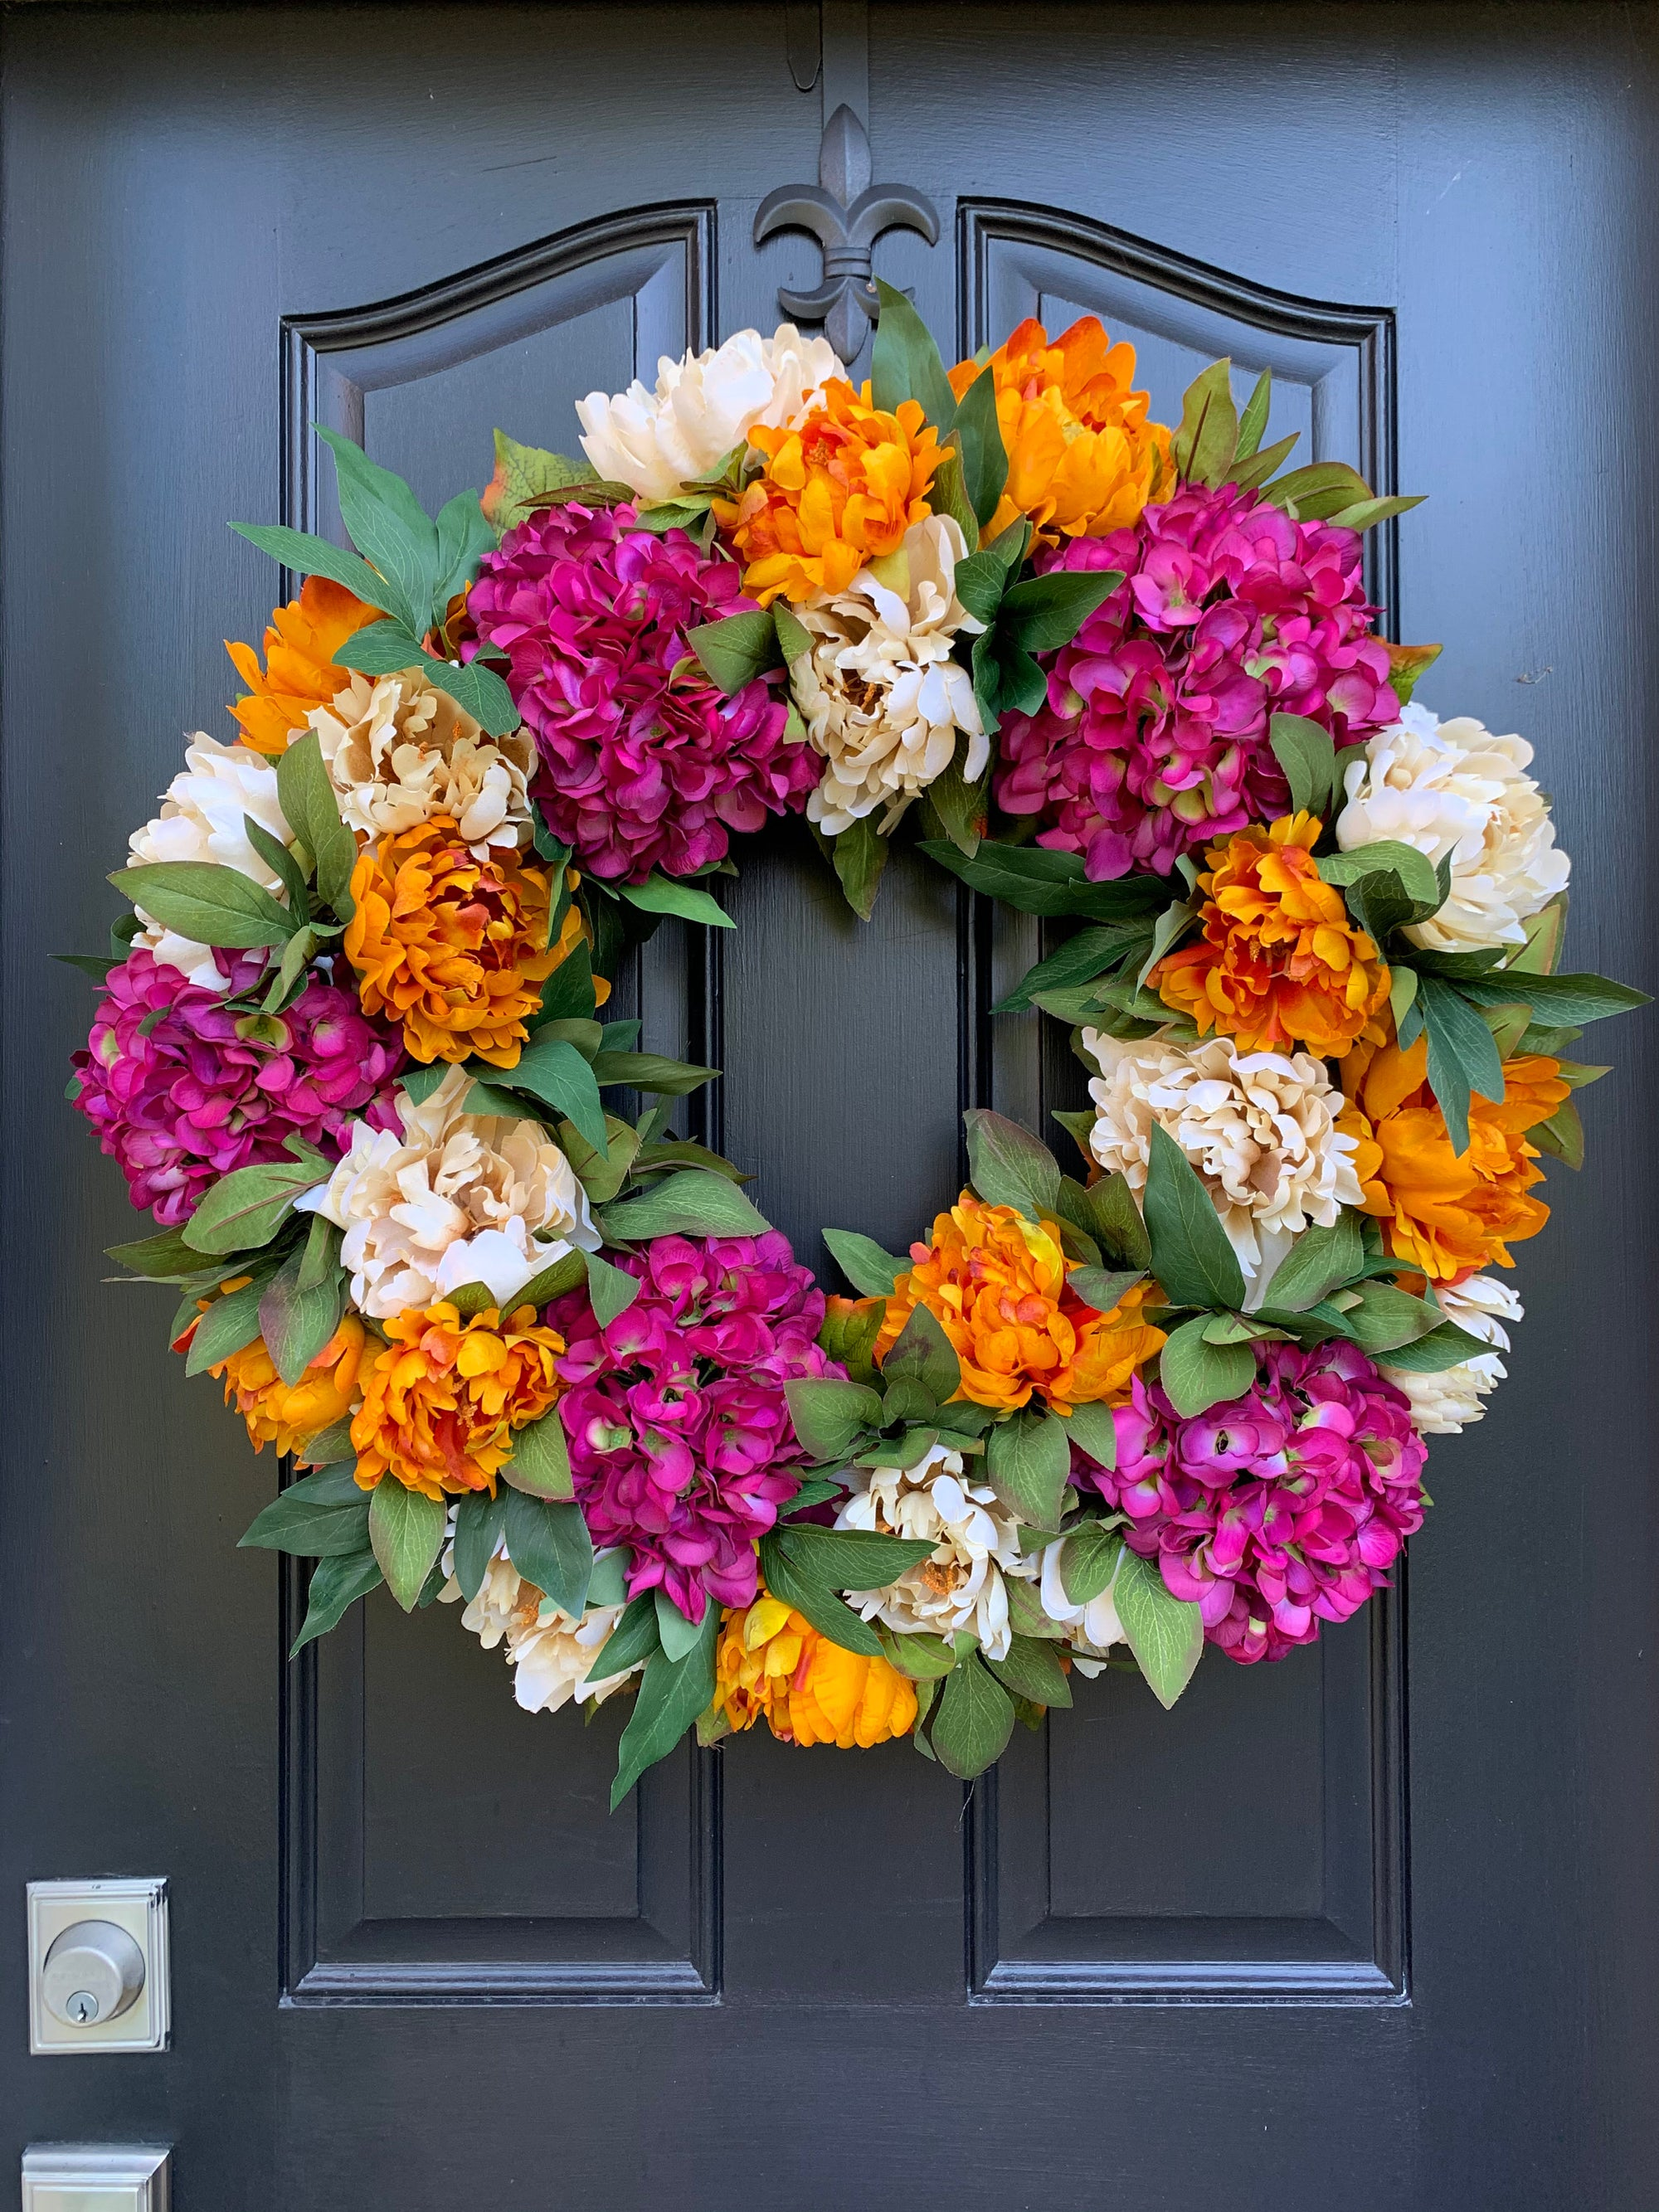 Late Summer Fall Wreath for Front Door - Colorful Fall Hydrangea, Peony and Dahlia Wreath